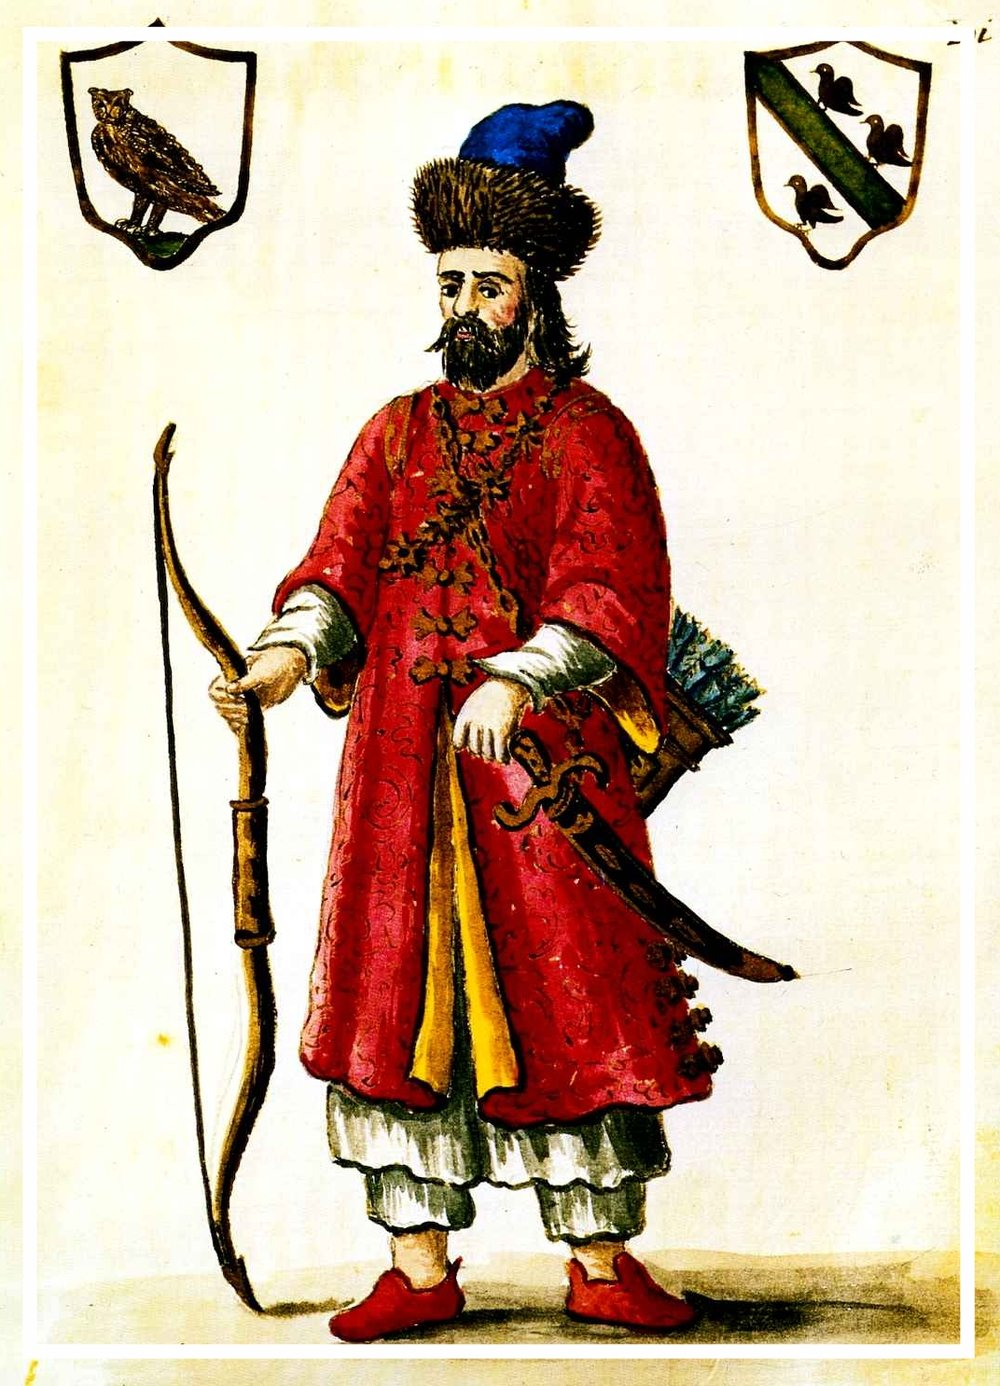 Marco Polo with Bow and Sword